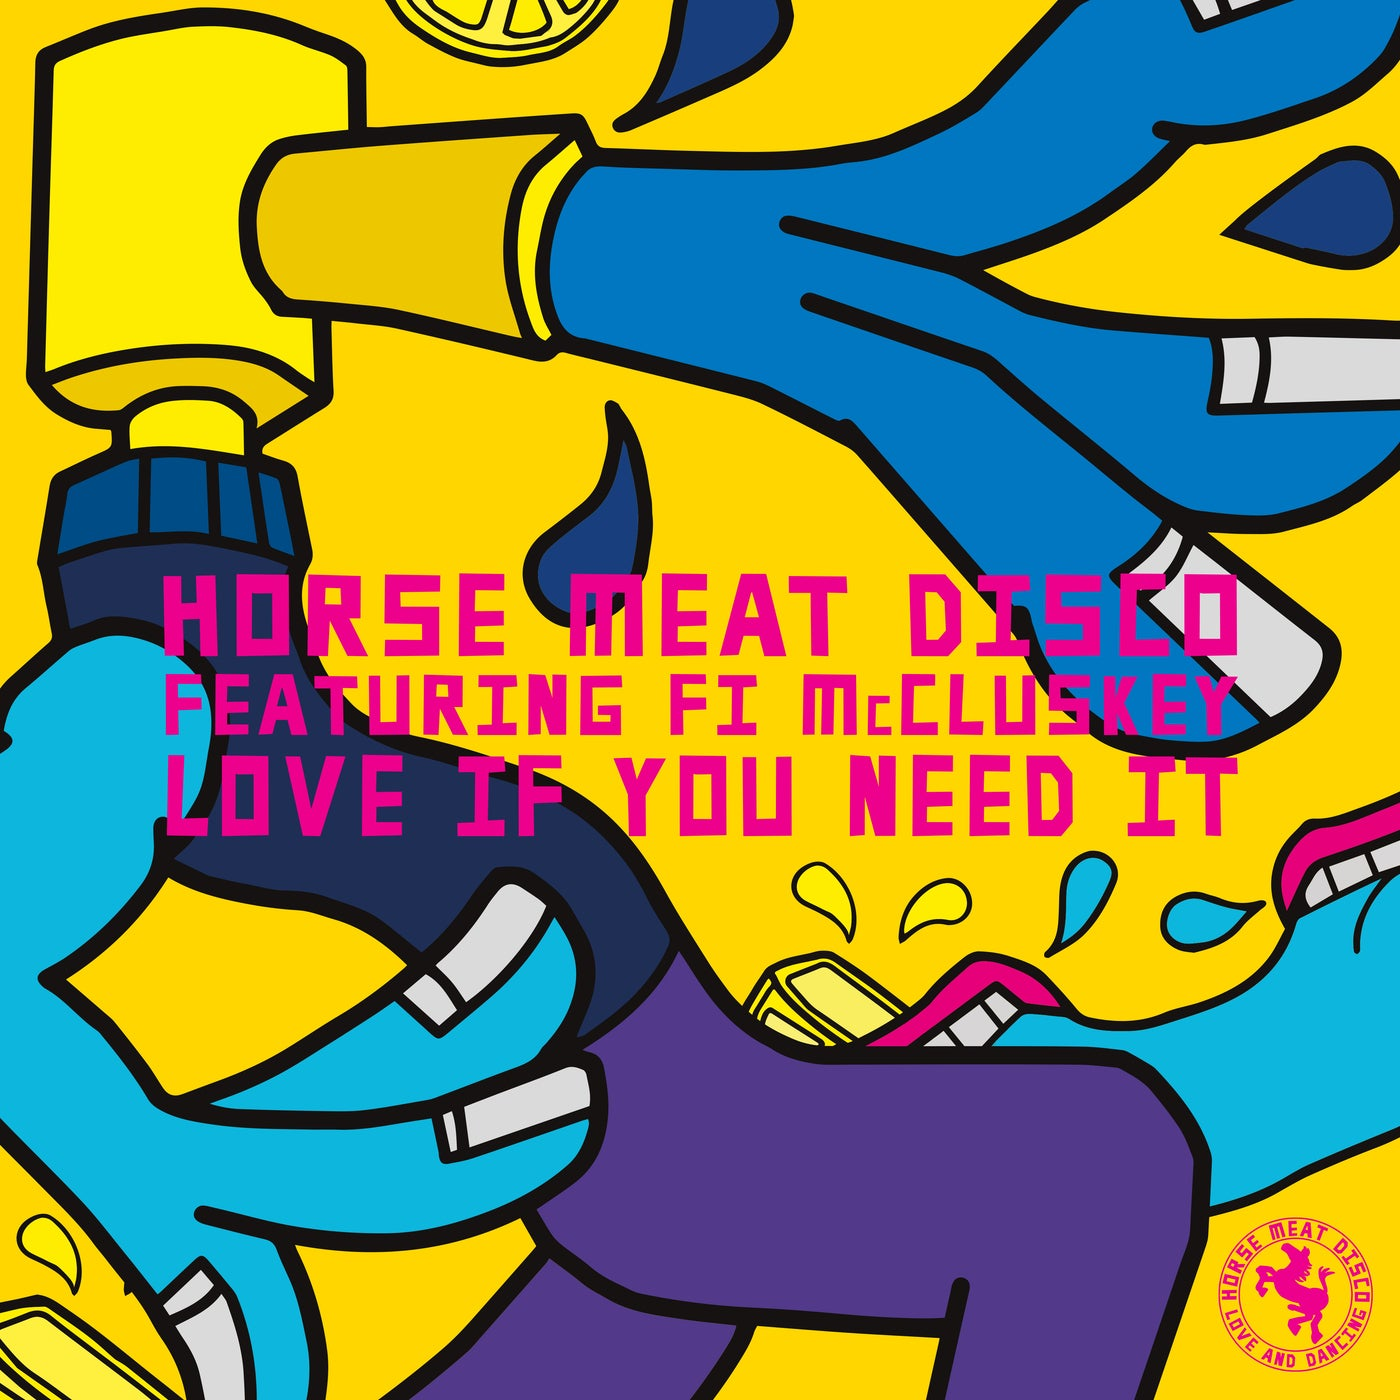 Love If You Need It feat. Fi McCluskey (Mousse T.'s Extended Classic Shizzle)